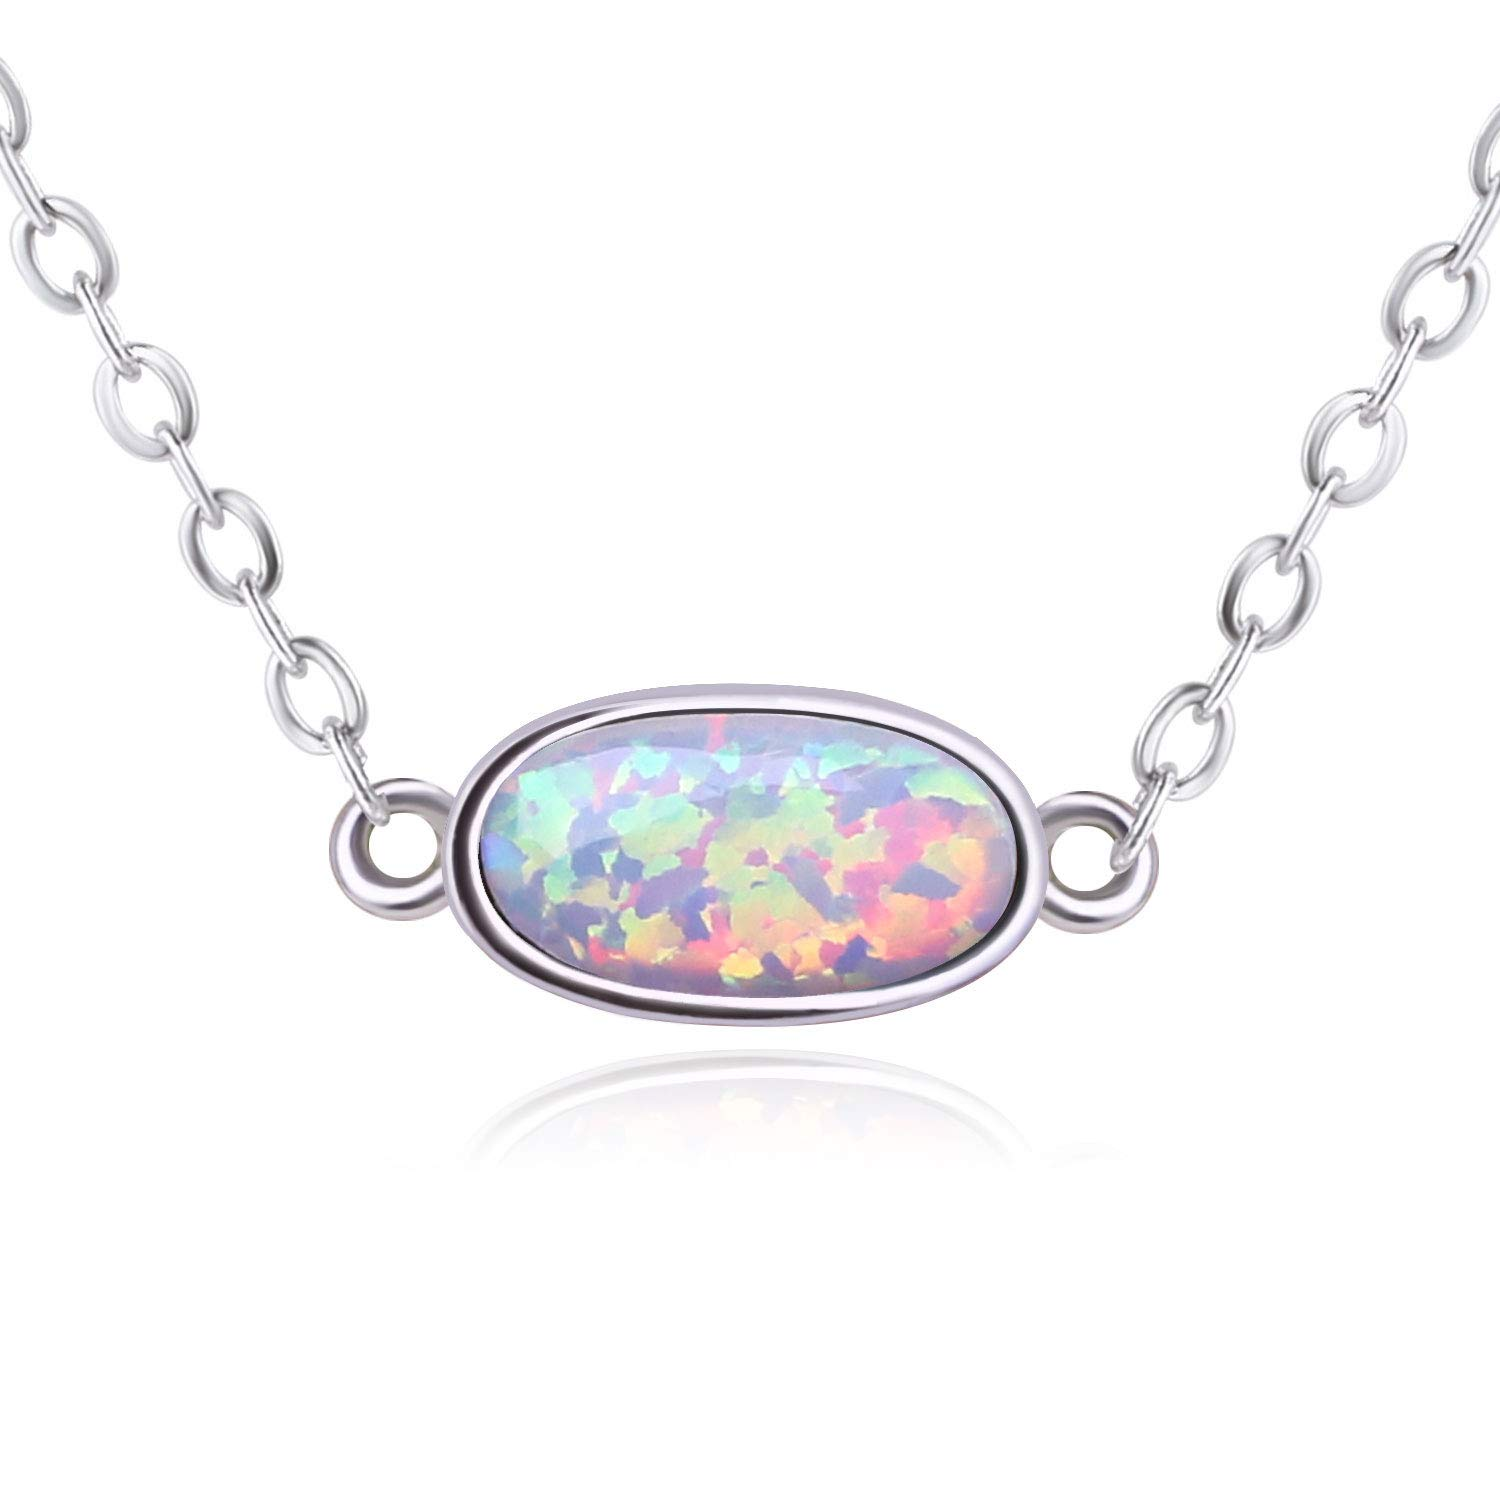 KELITCH Fashion Initial Choker Necklace Syuthetic Opal Oval Pendants Necklace (White B)